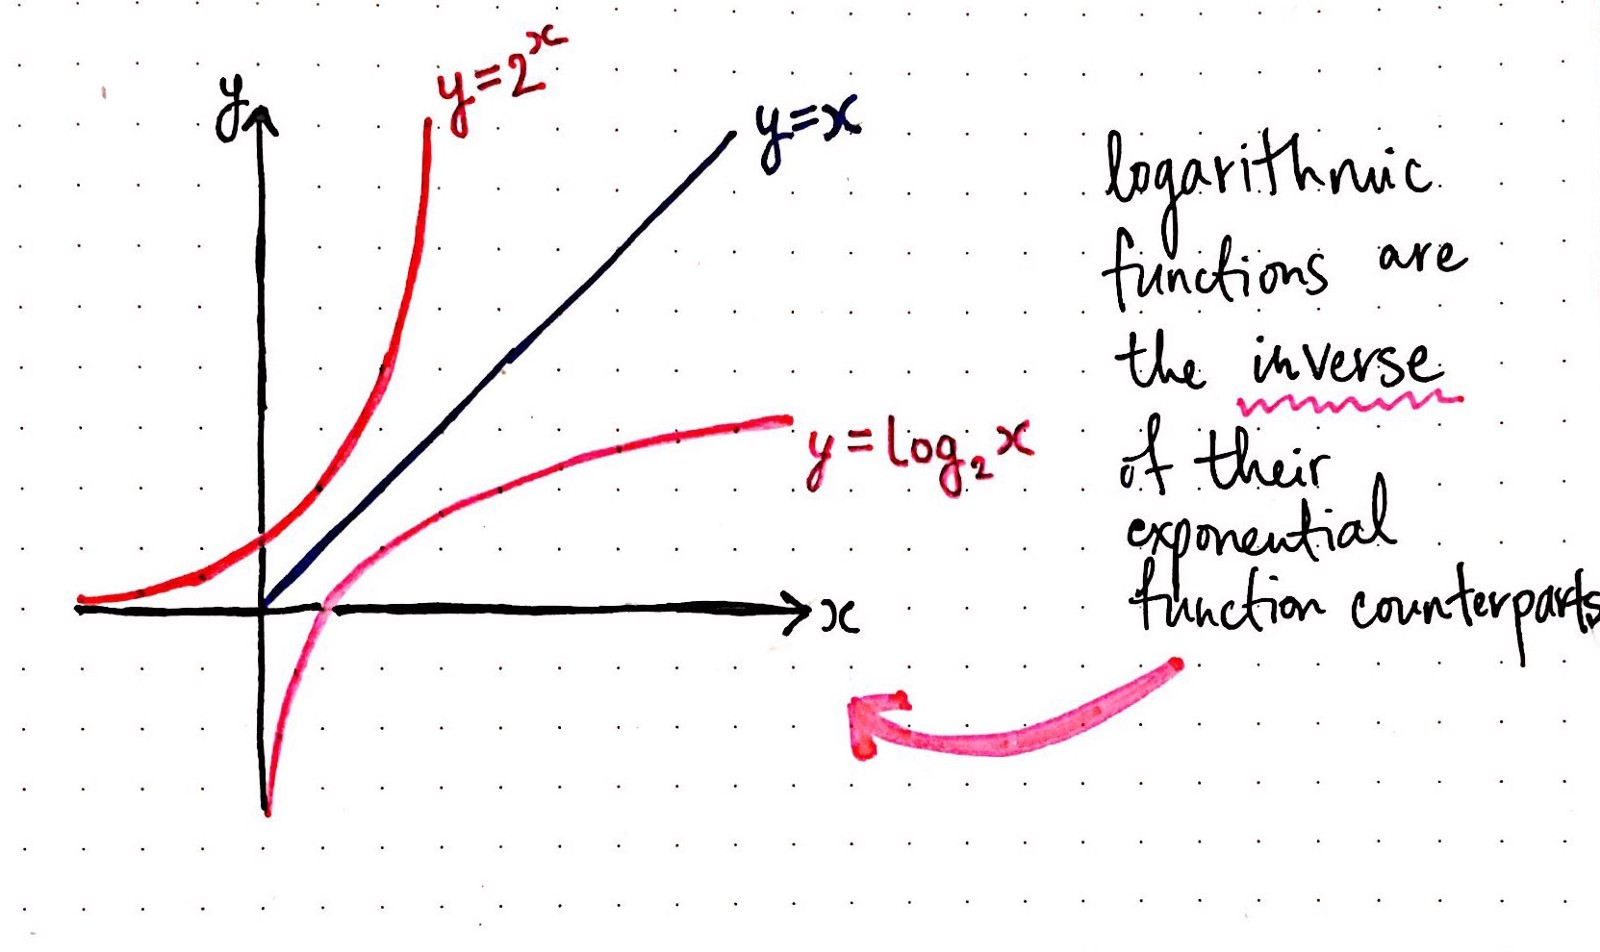 The Inverse Of An Exponential Function Is A Logarithmic